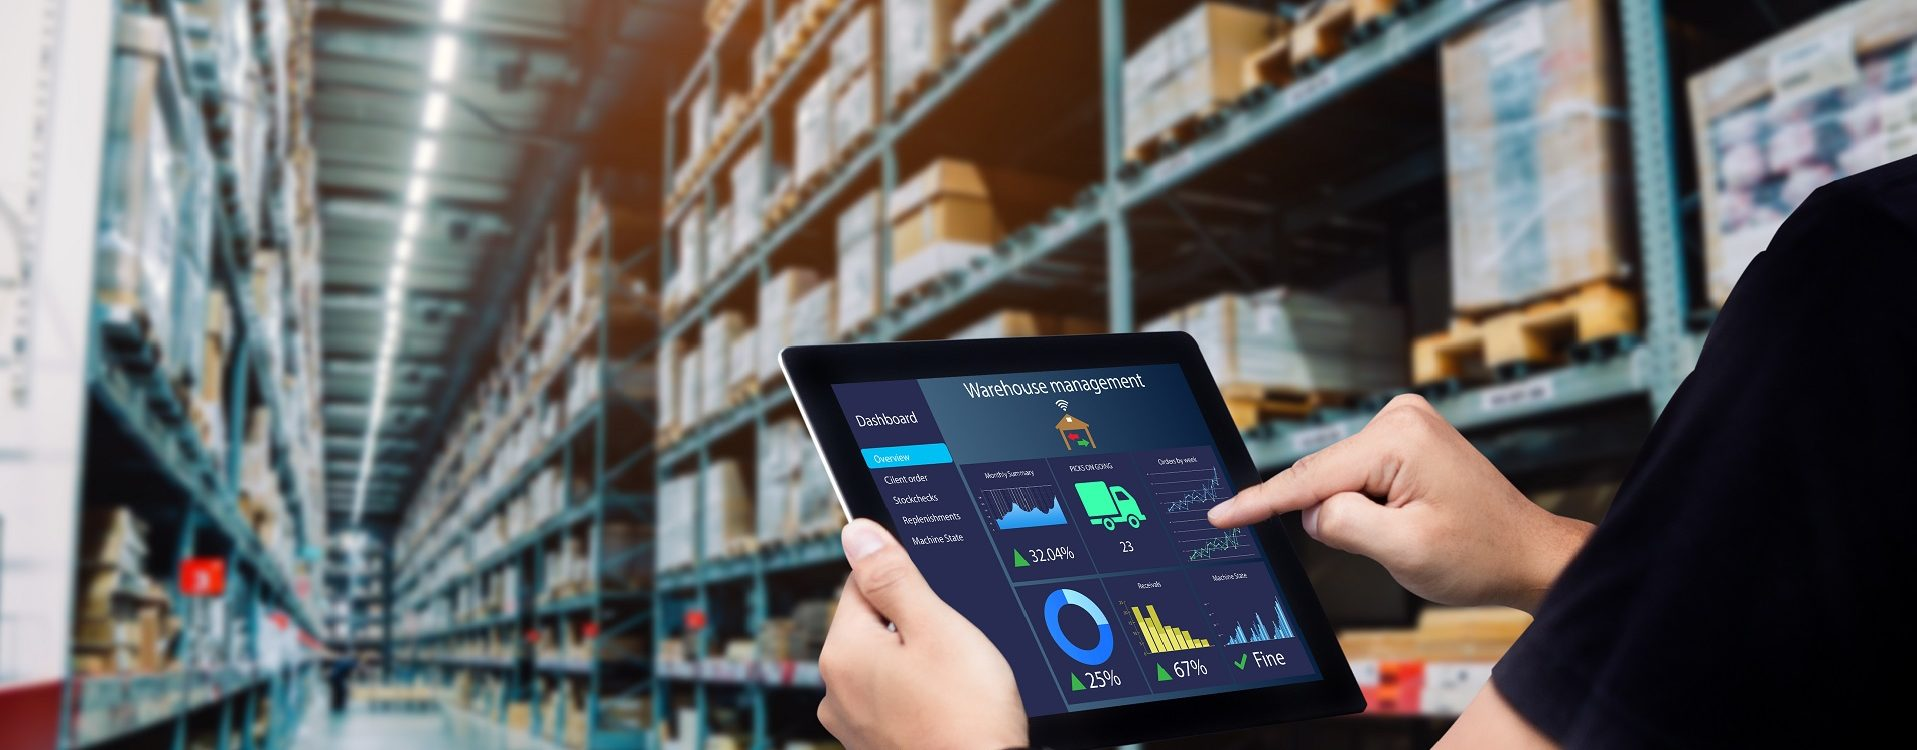 Logistica 4.0: tra lean management e digitalizzazione